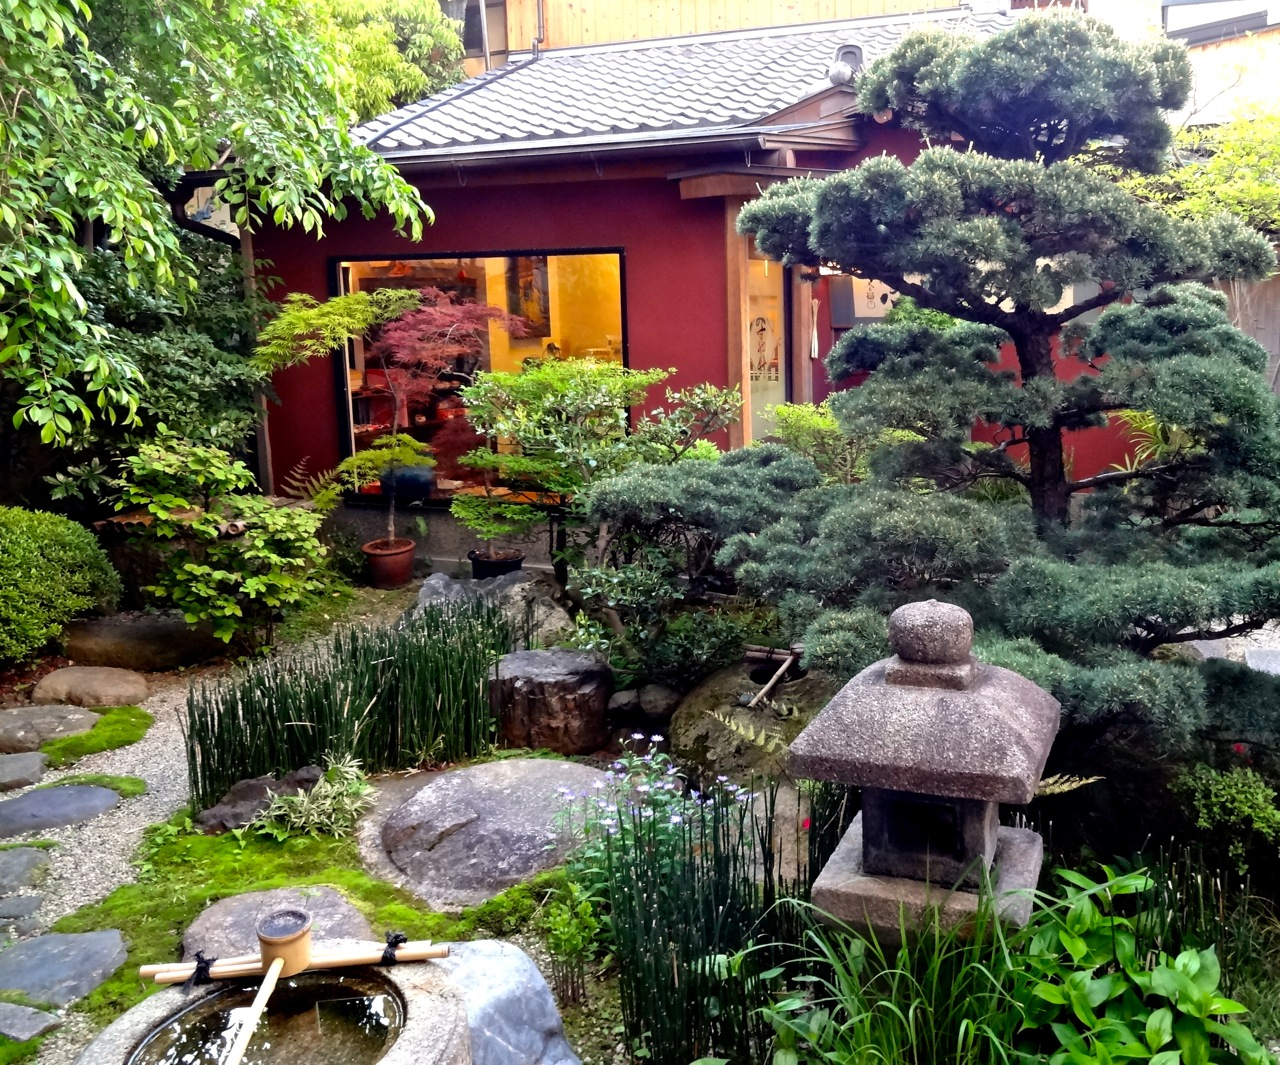 Stone Zen Garden The art of the zen garden travel the world over meandering paths stone lantern water basin koi pond rocks flowers and workwithnaturefo